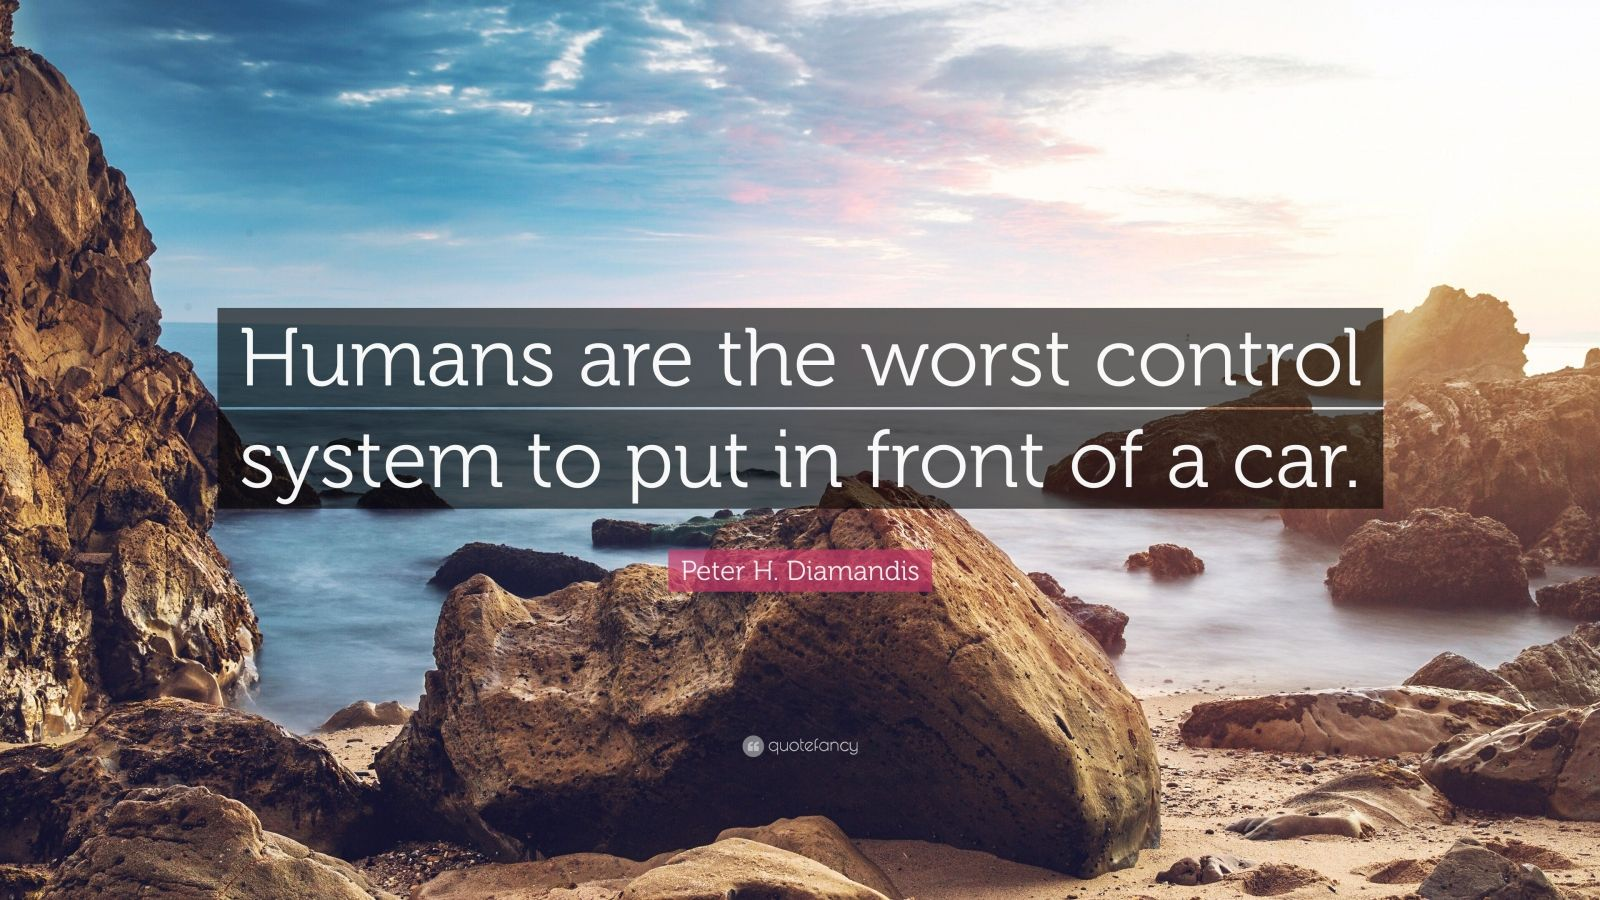 """Peter H. Diamandis Quote: """"Humans are the worst control system to put in front of a car."""""""